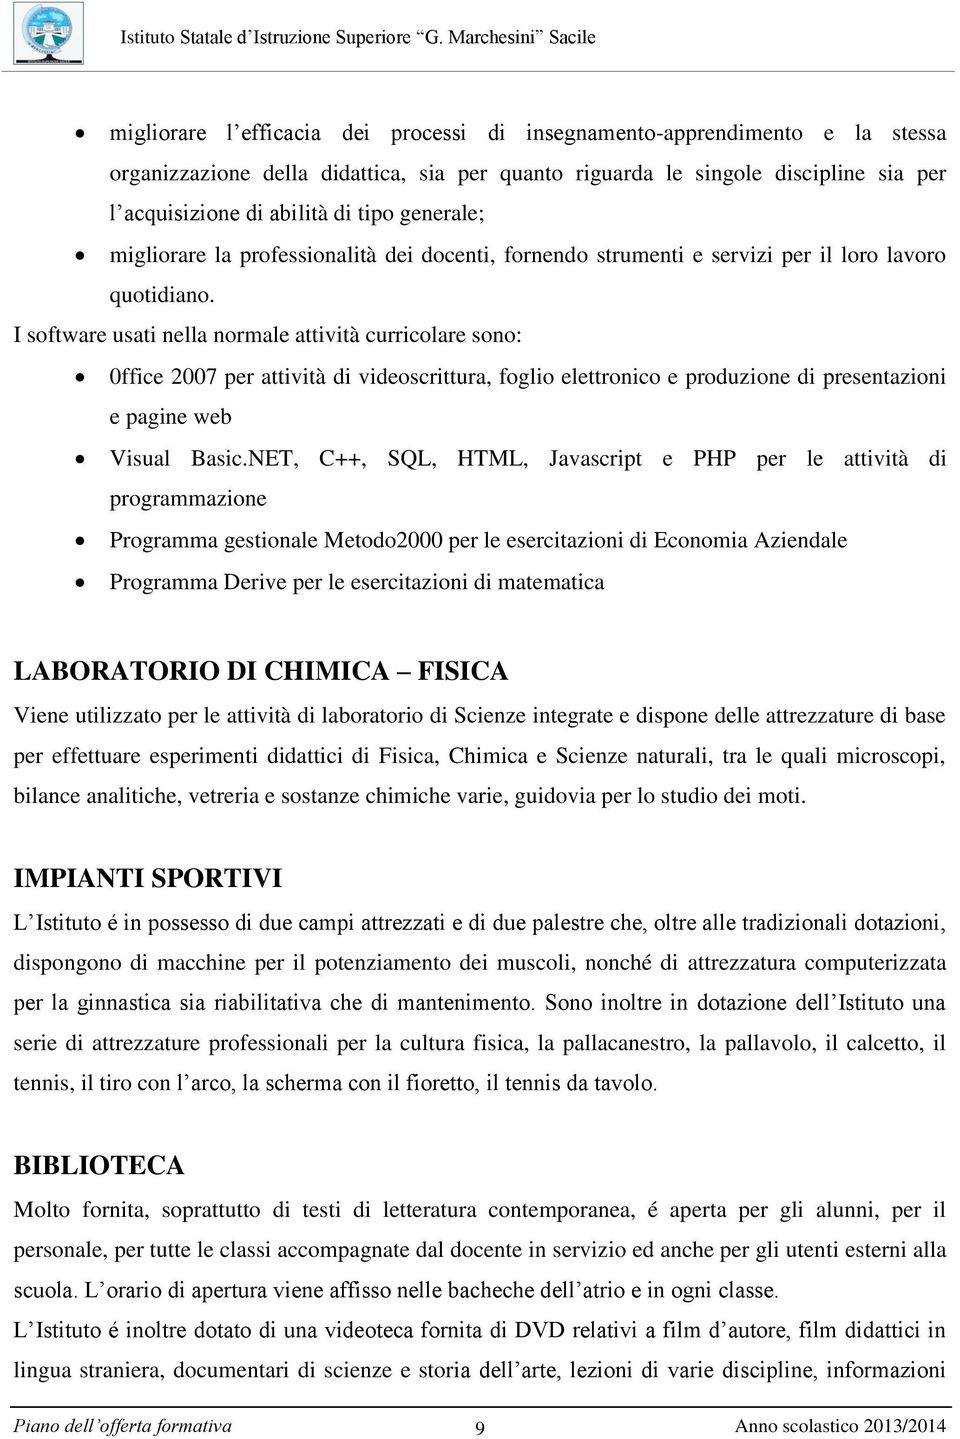 Piano dell offerta formativa pdf for Software di piano planimetrico